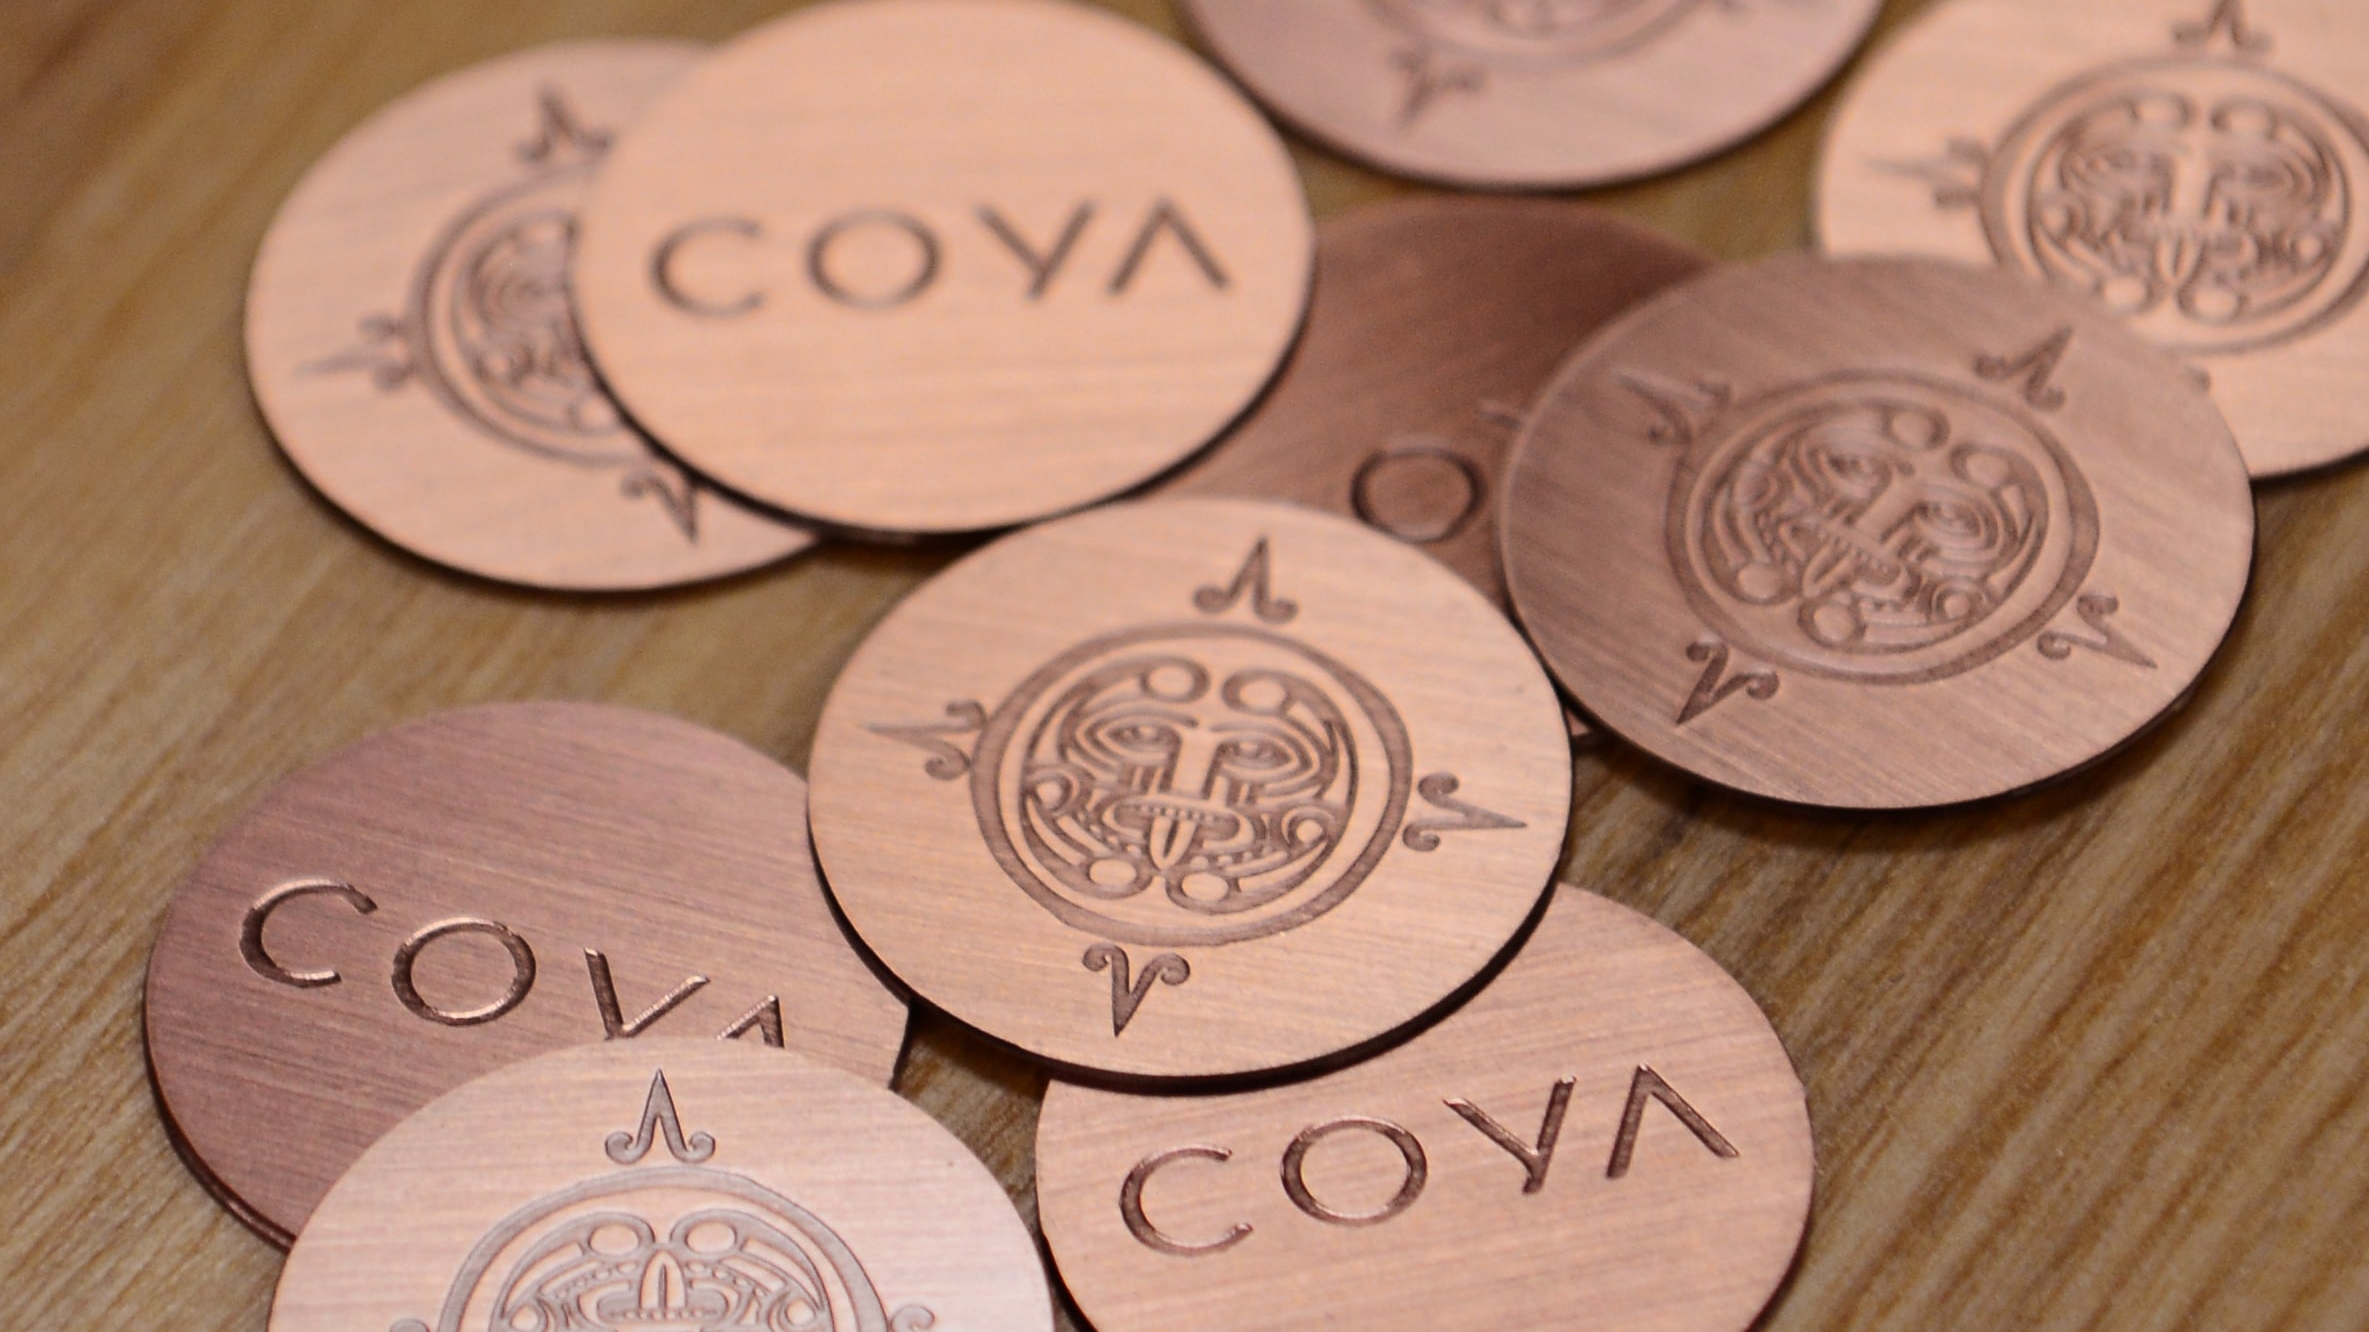 Brushed Antique Copper Cards - Coya